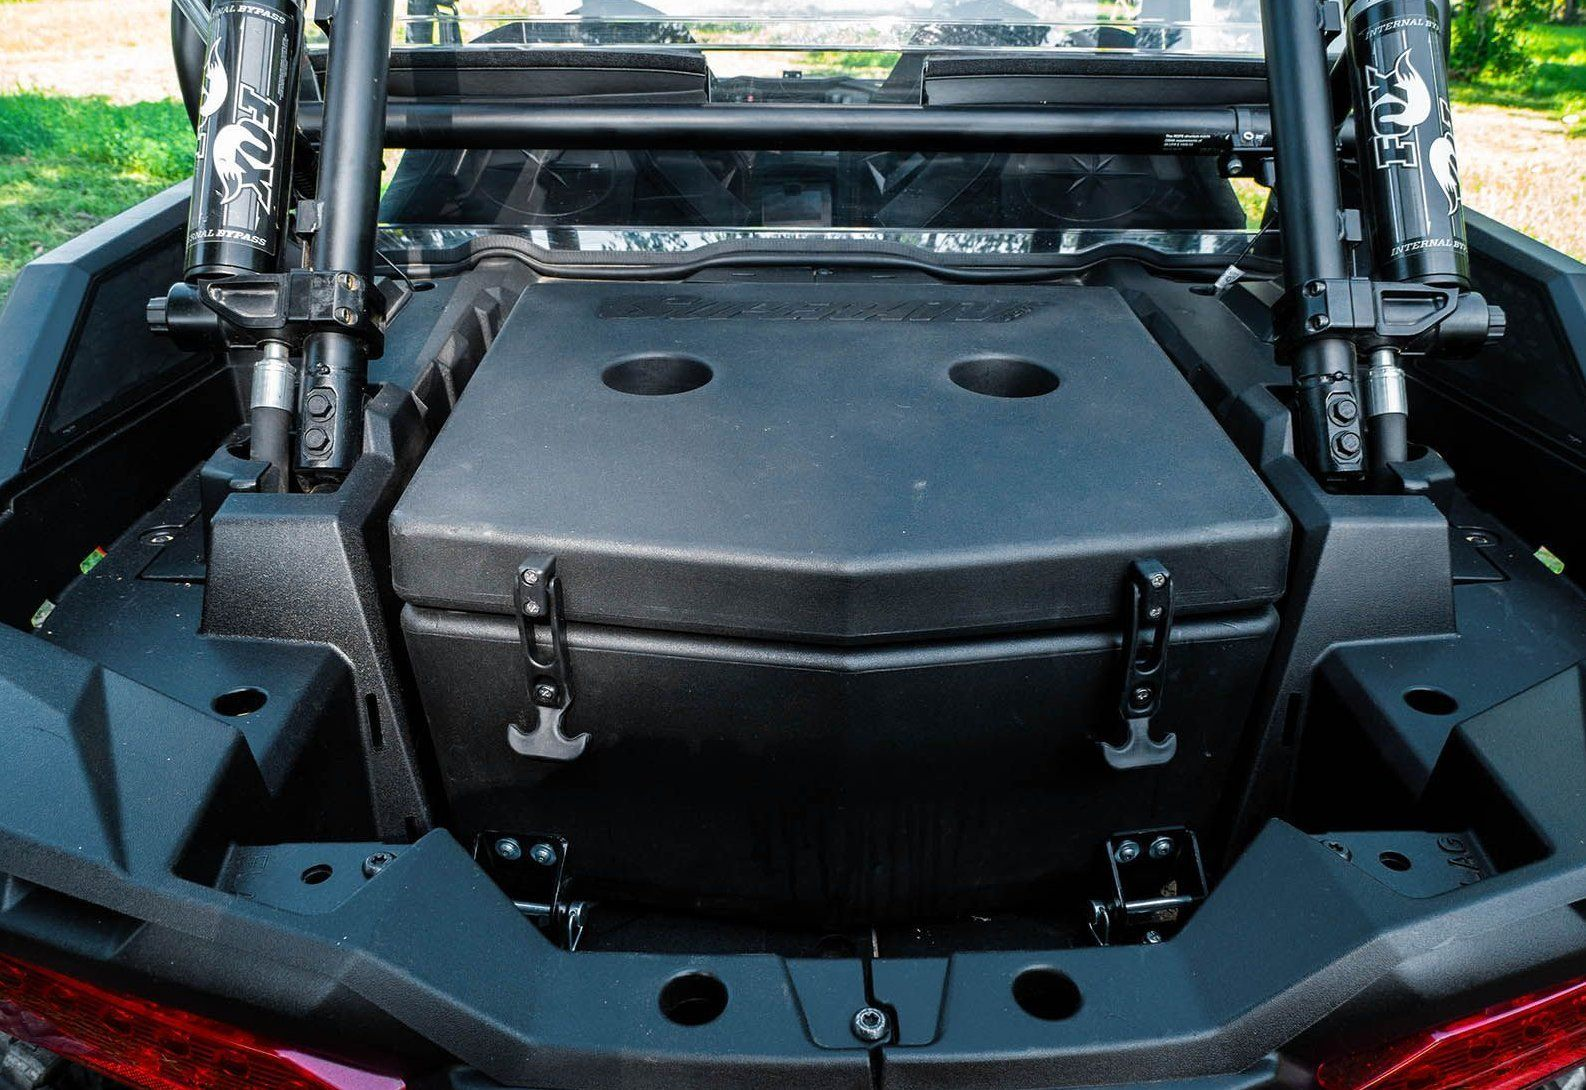 Super Atv Rzr Xp Xp Turbo Rear Insulated Cargo Cooler Box